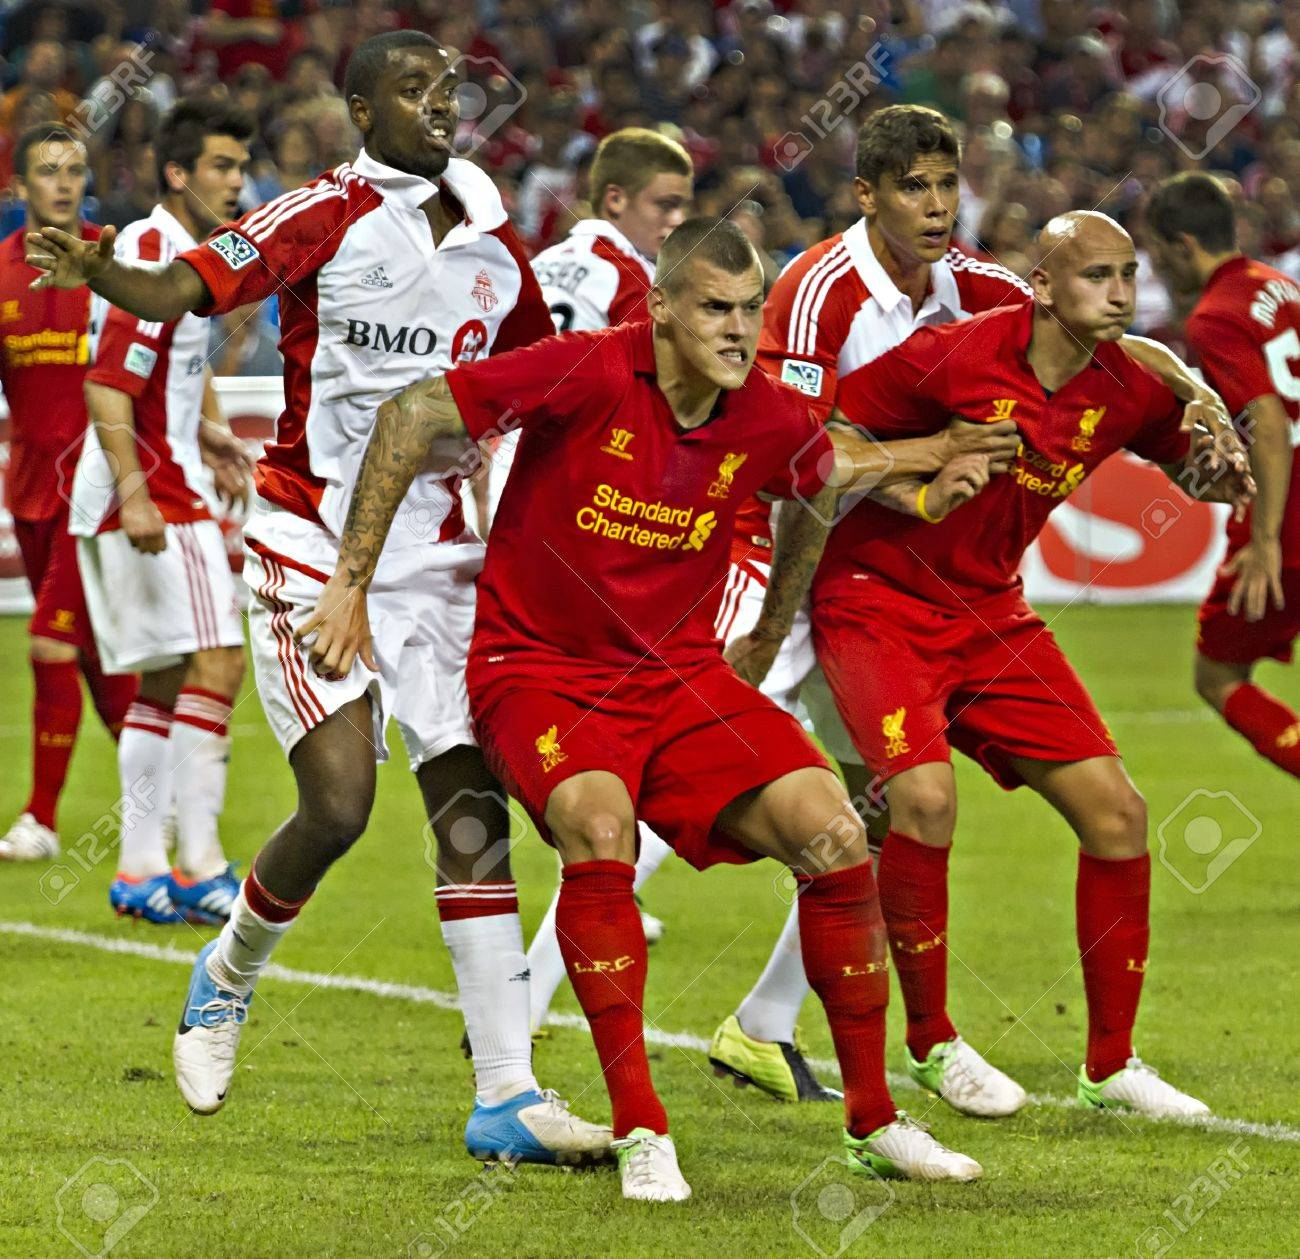 liverpool s martin skrtel front left and jonjo shelvey front stock photo picture and royalty free image image 14581605 liverpool s martin skrtel front left and jonjo shelvey front